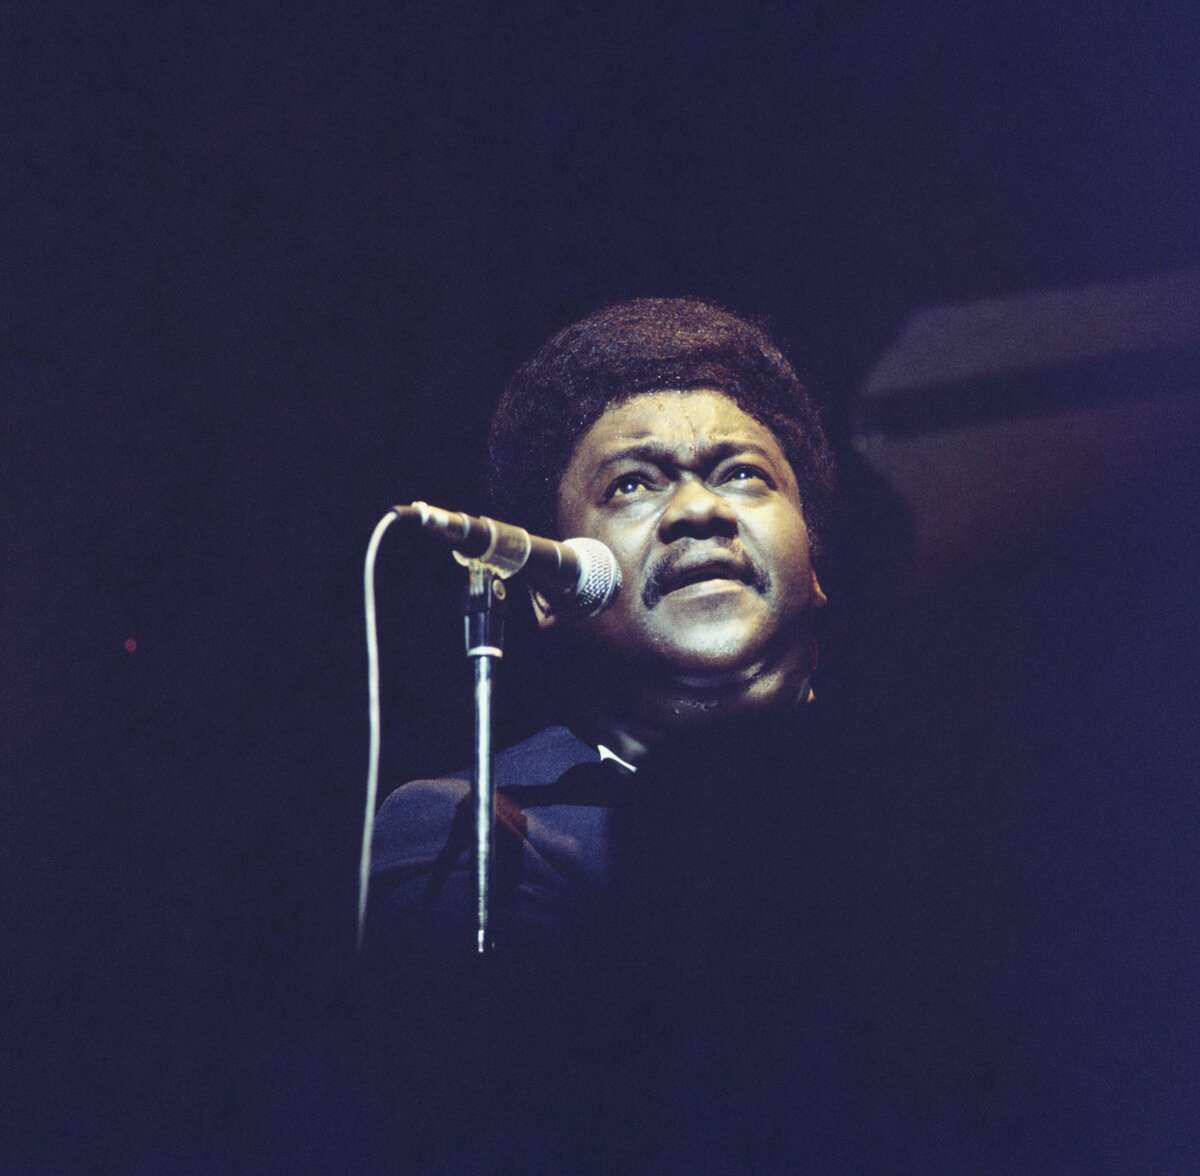 Fats Domino performs on stage in the early 1970's. (Photo by David Redfern/Redferns)